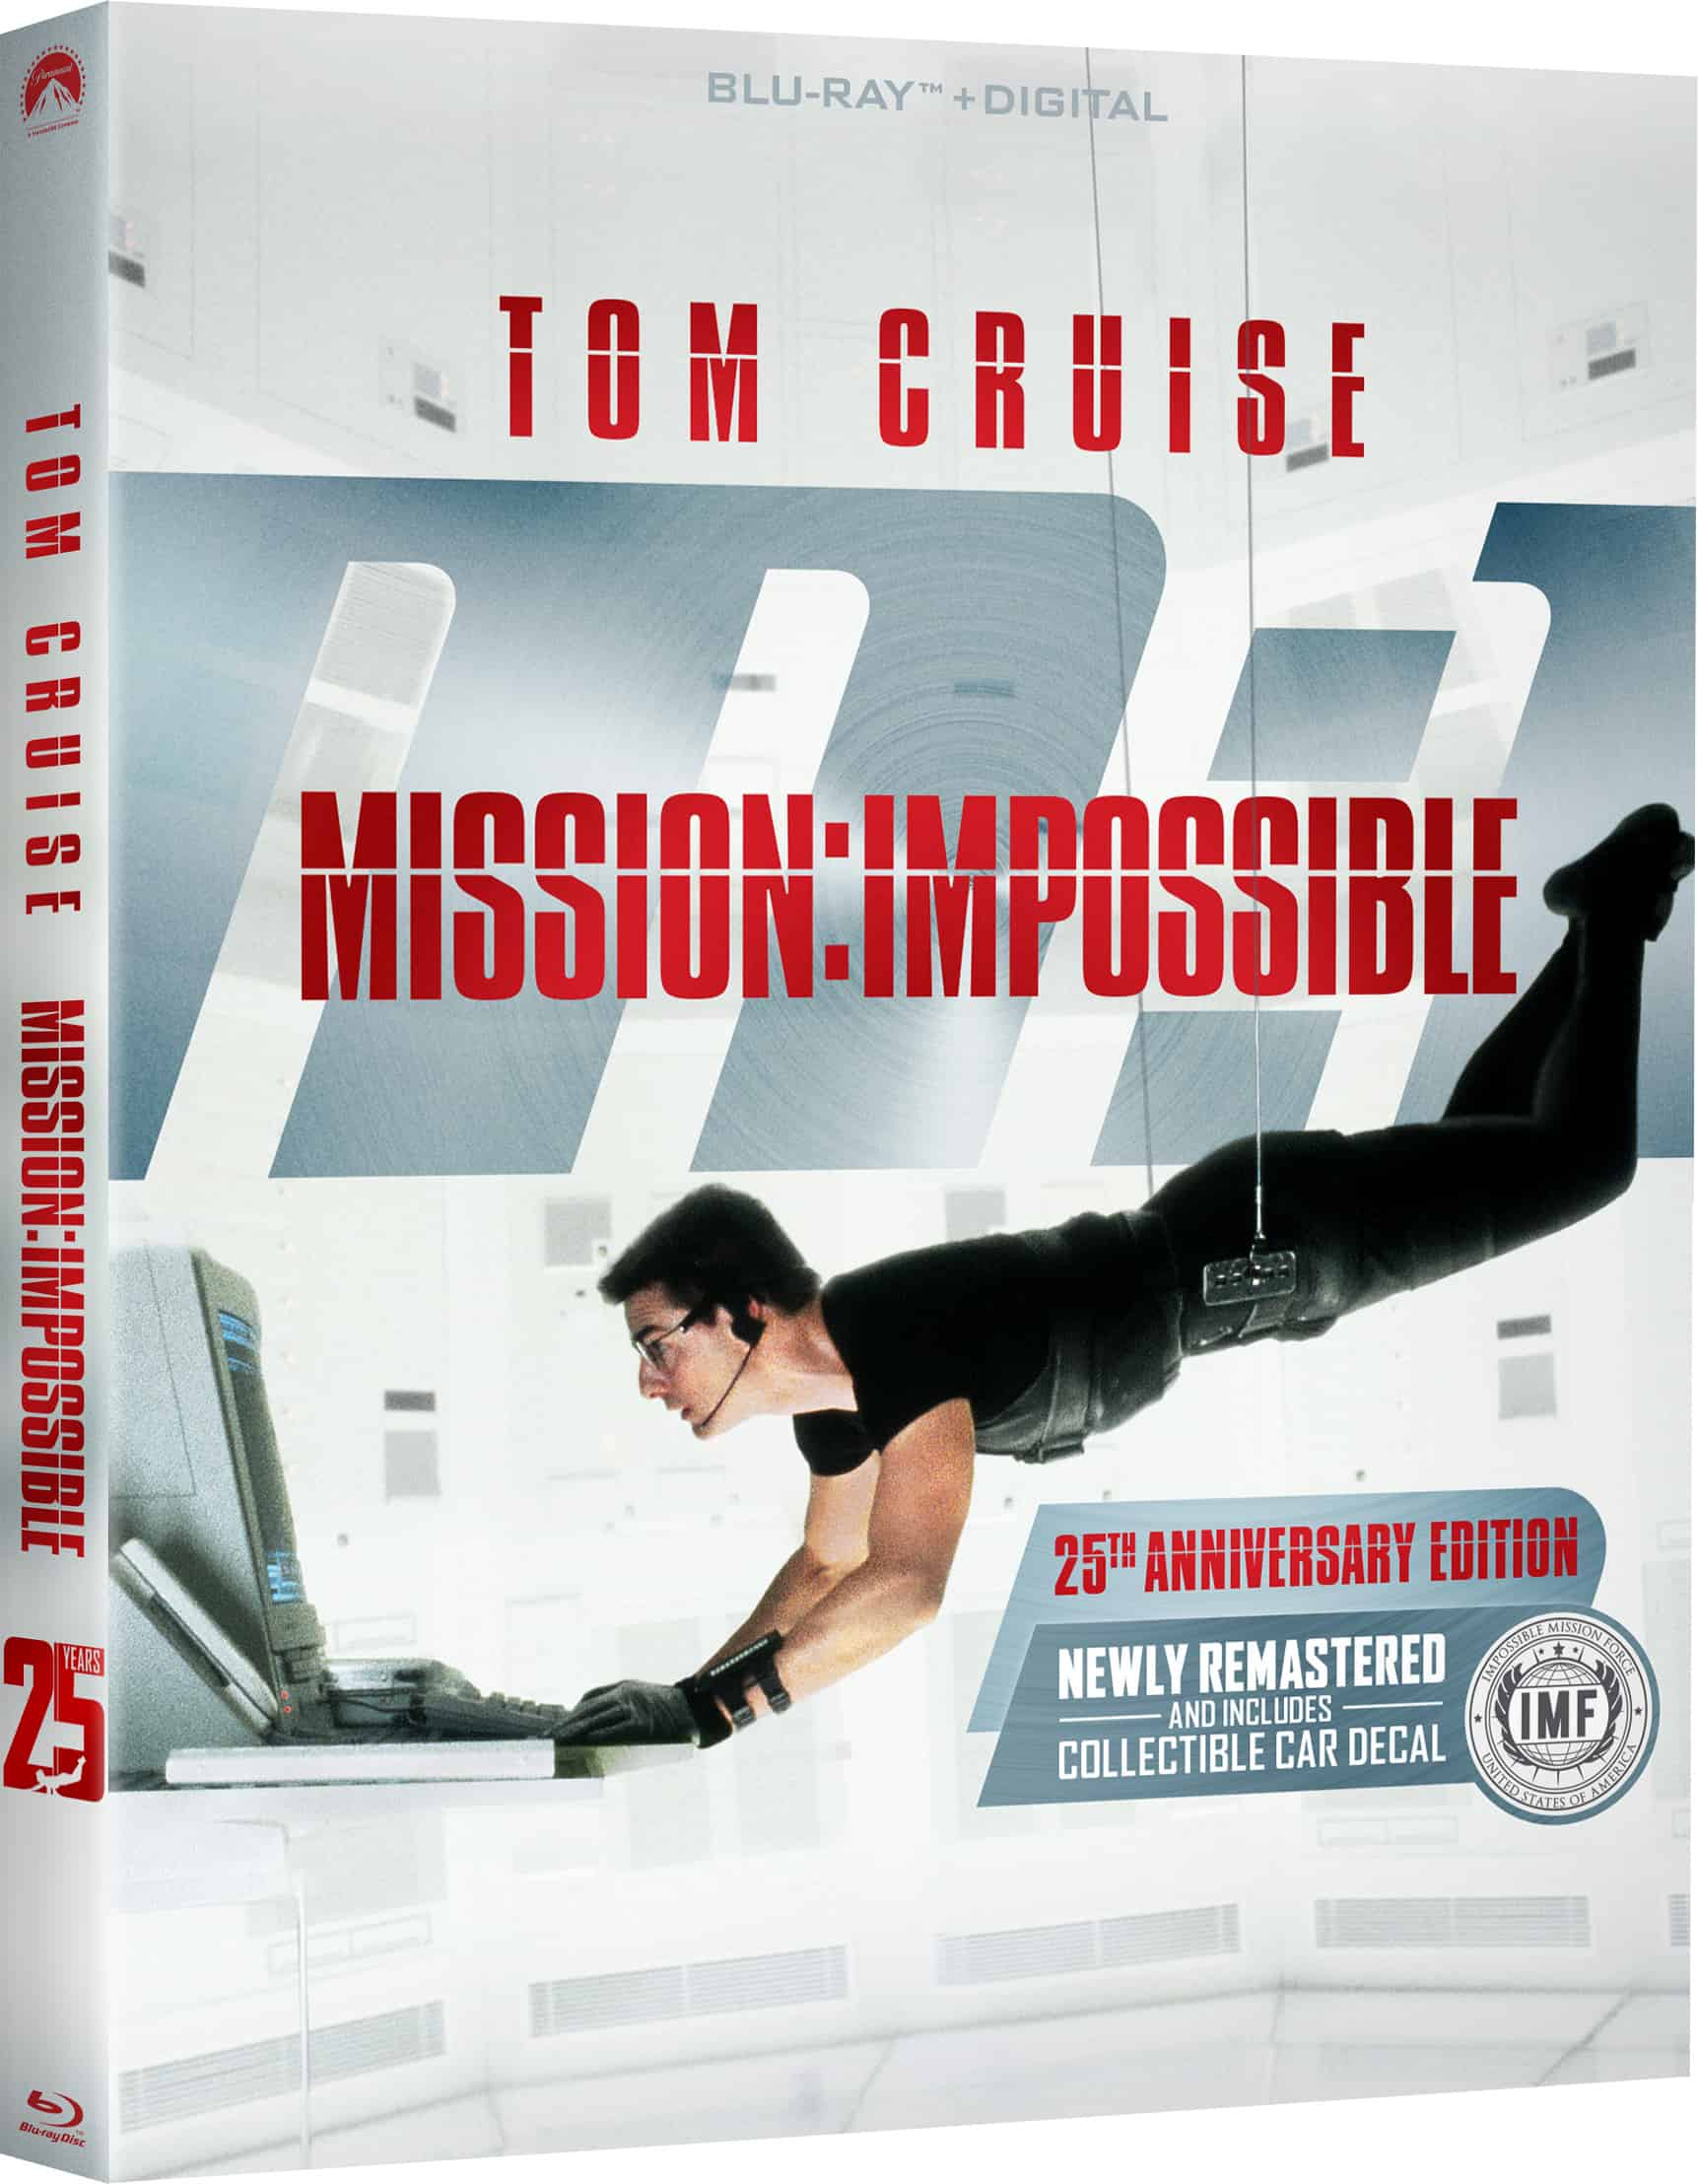 mission: impossible blu ray 25